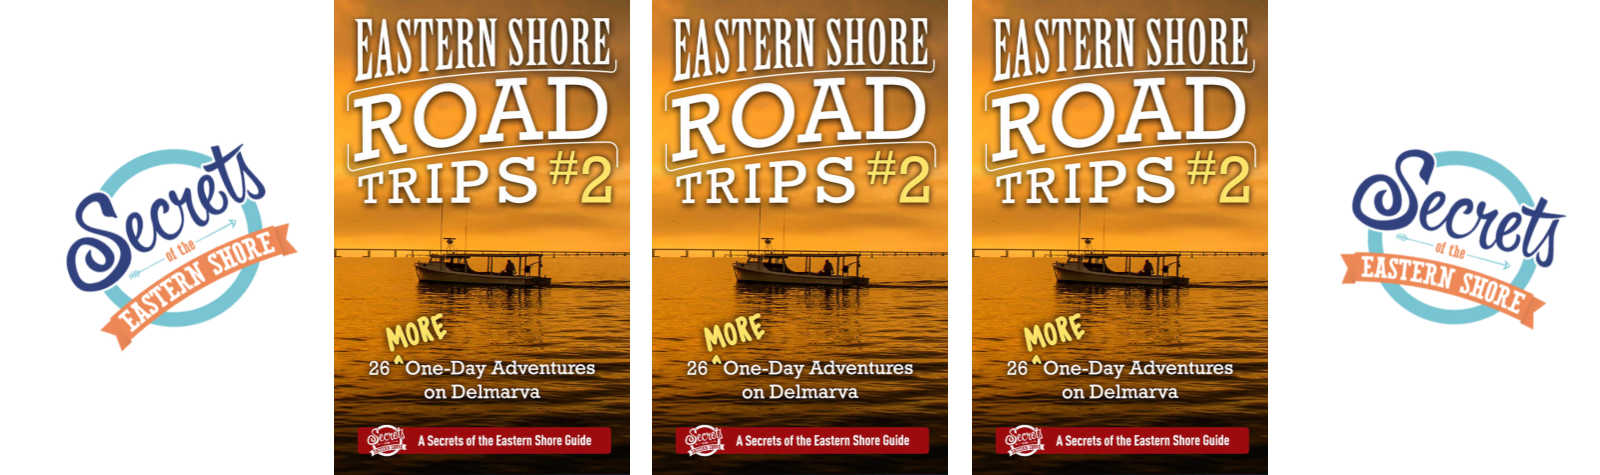 COMING SOON! Eastern Shore Road Trips #2: 26 MORE Adventures on Delmarva